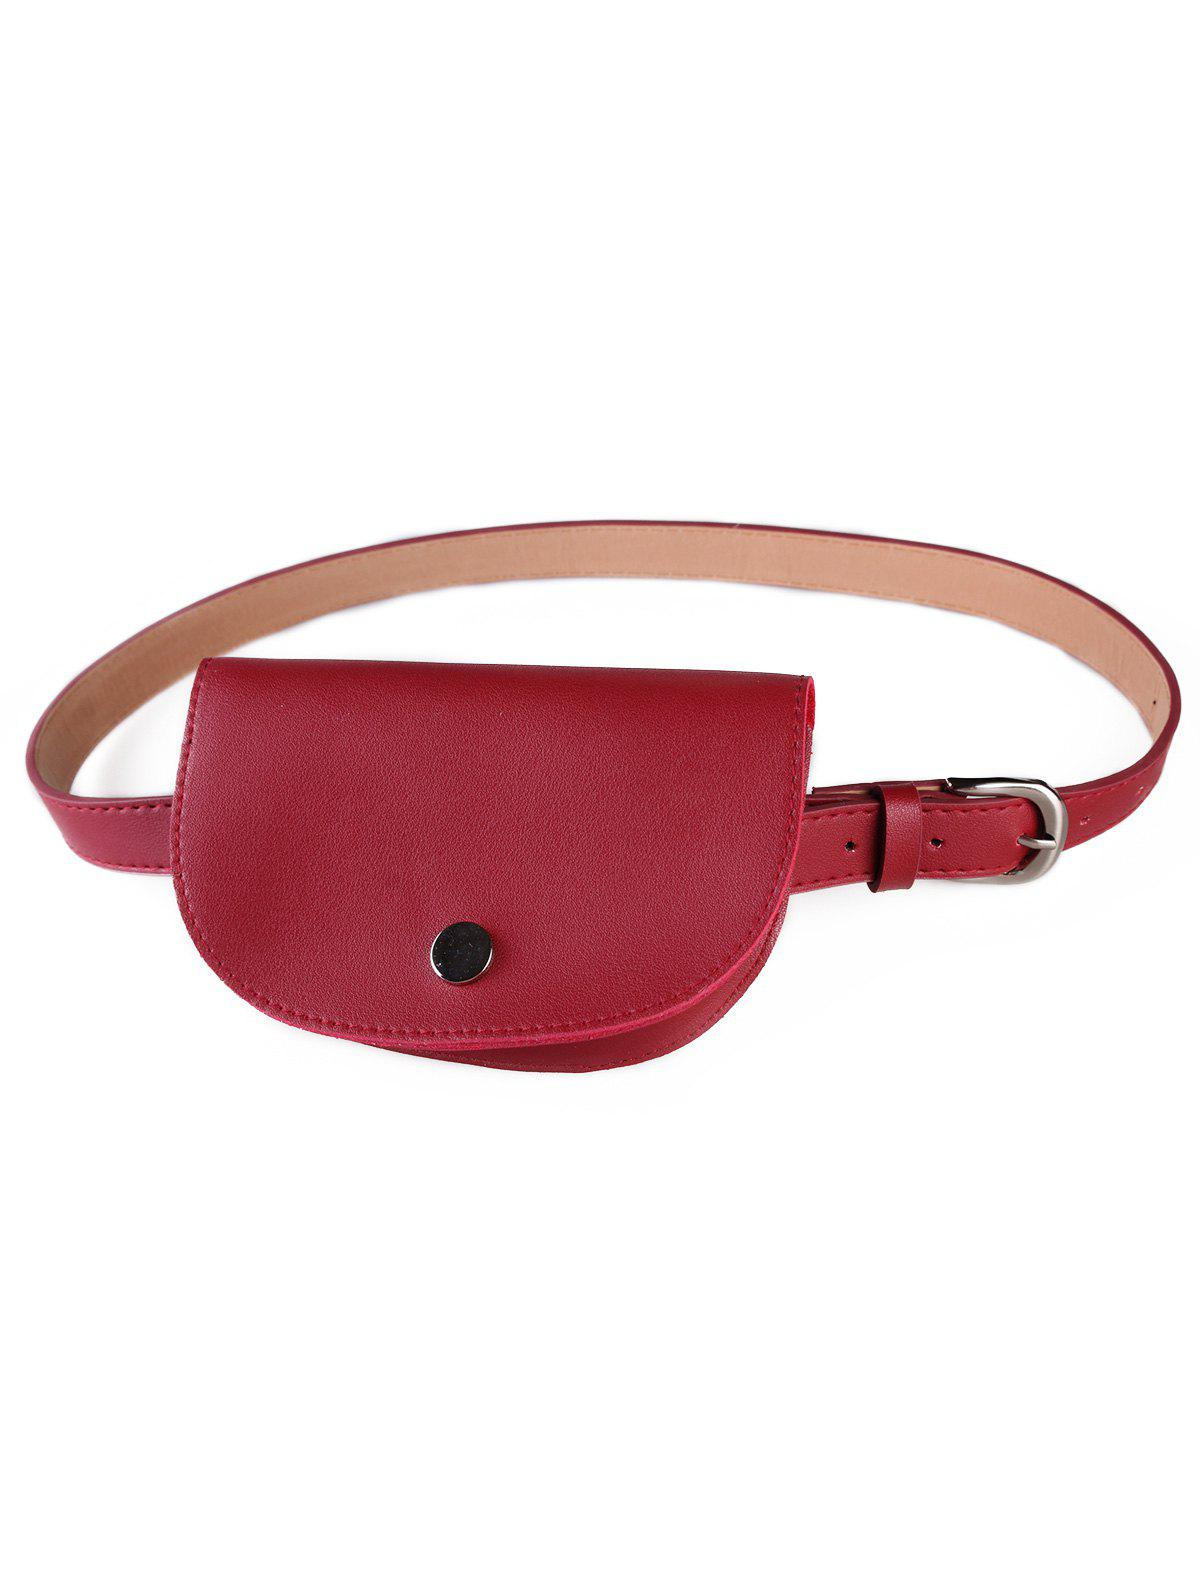 Chic Stylish Solid Color Fanny Pack Belt Bag